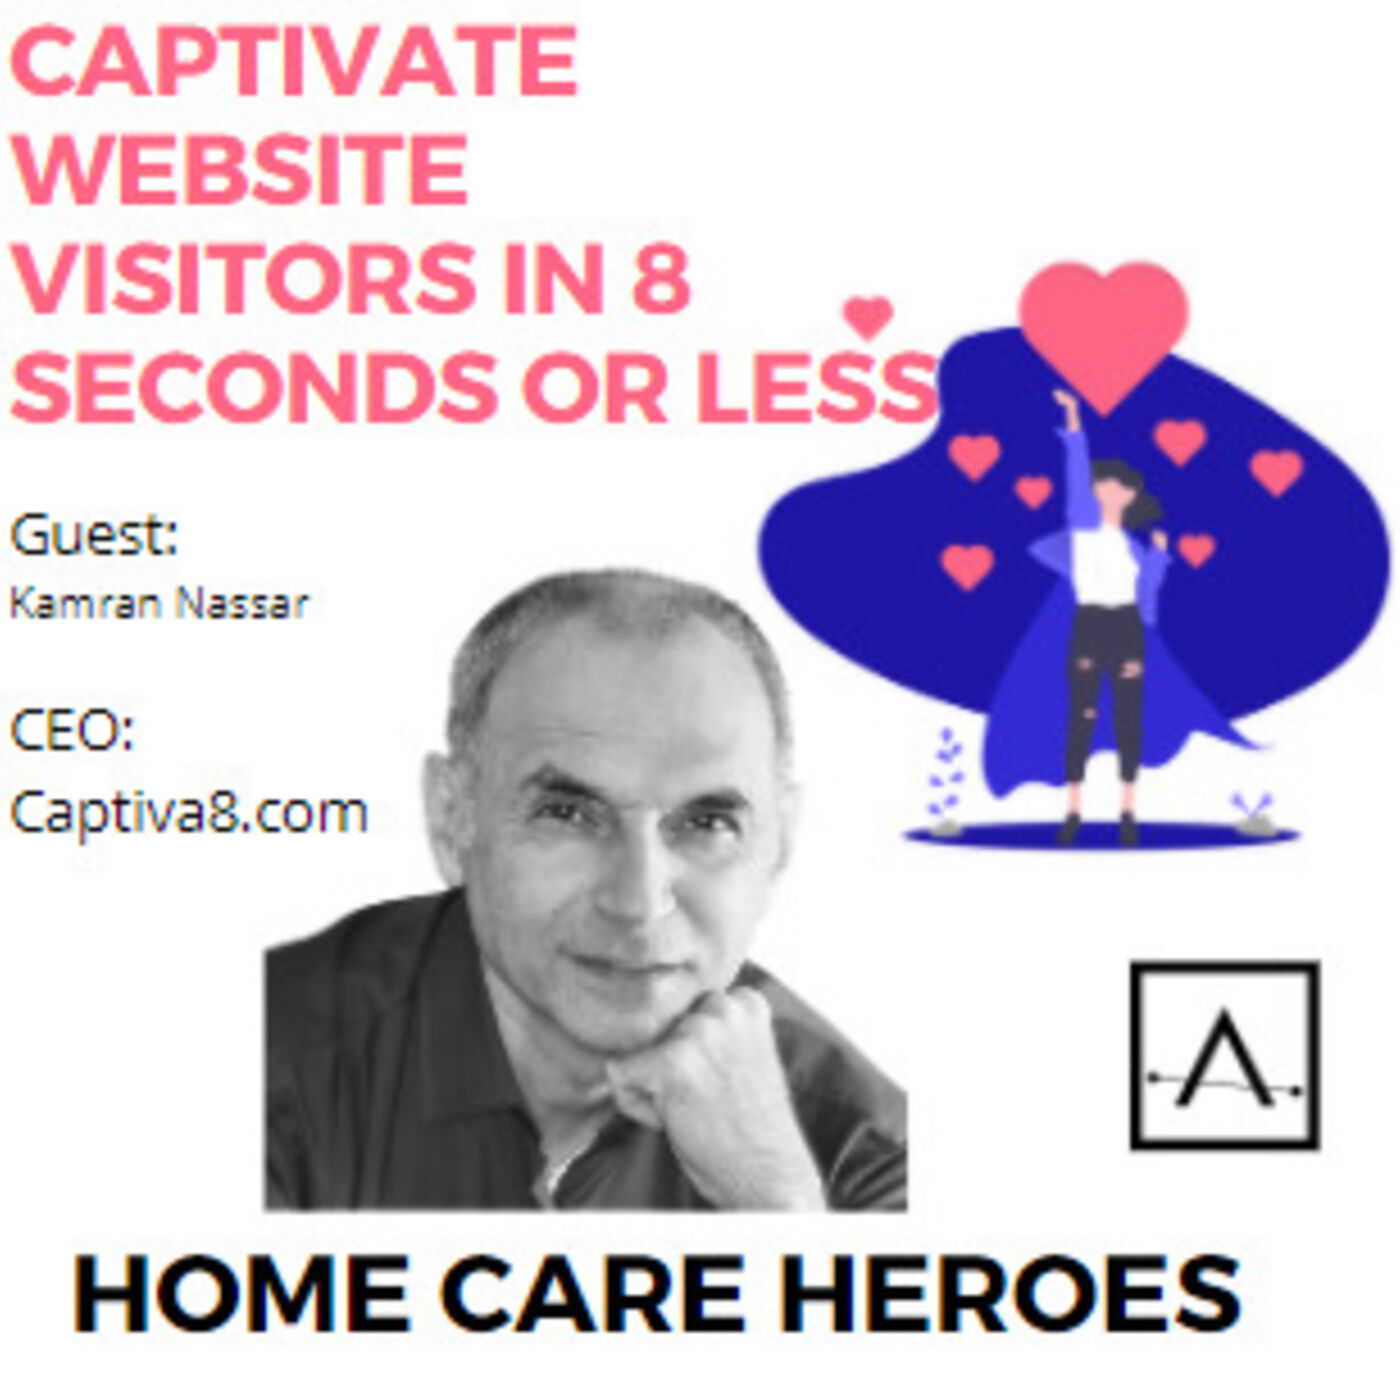 Captivate  Website Visitors in 8 seconds or less with Kamran Nassar